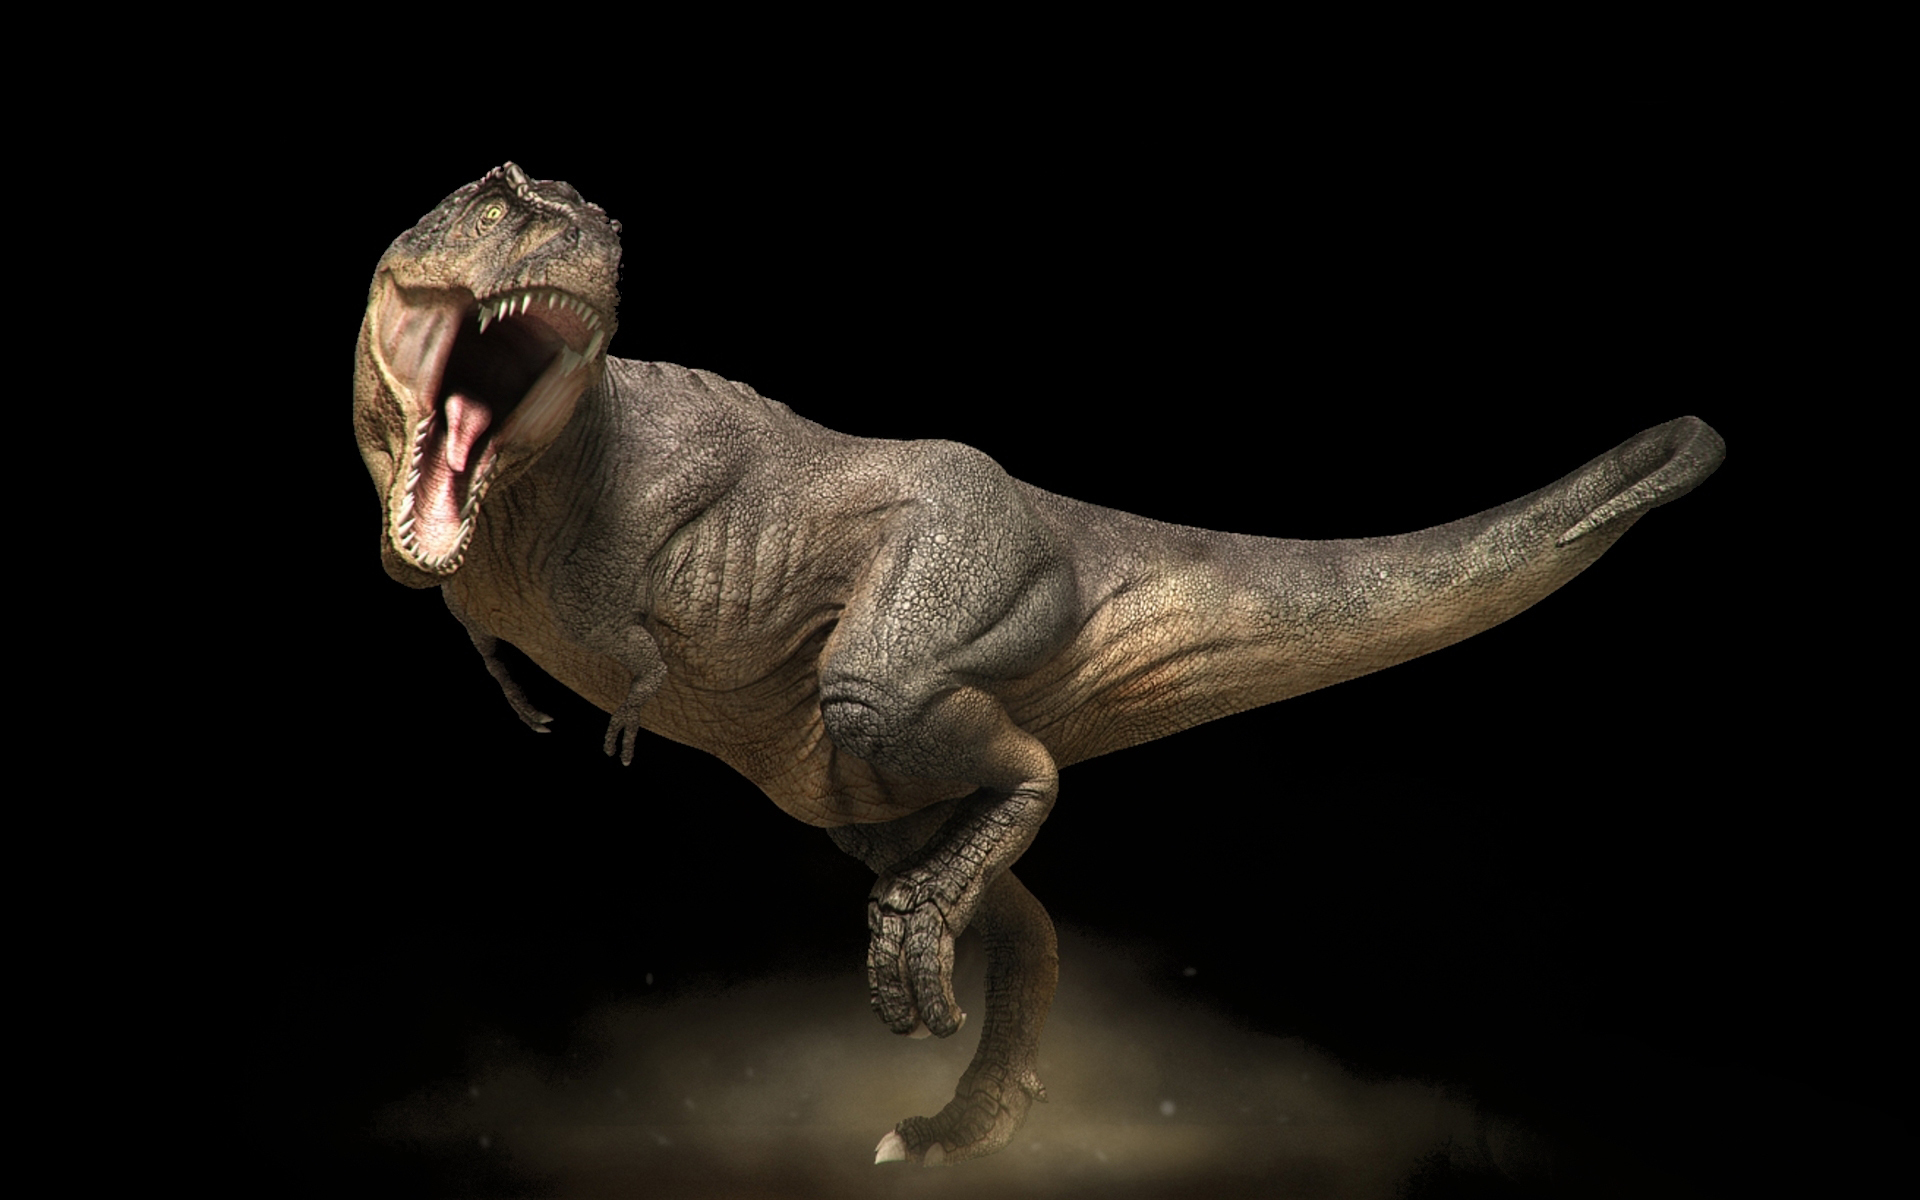 20444 download wallpaper Animals, Dinosaurs screensavers and pictures for free